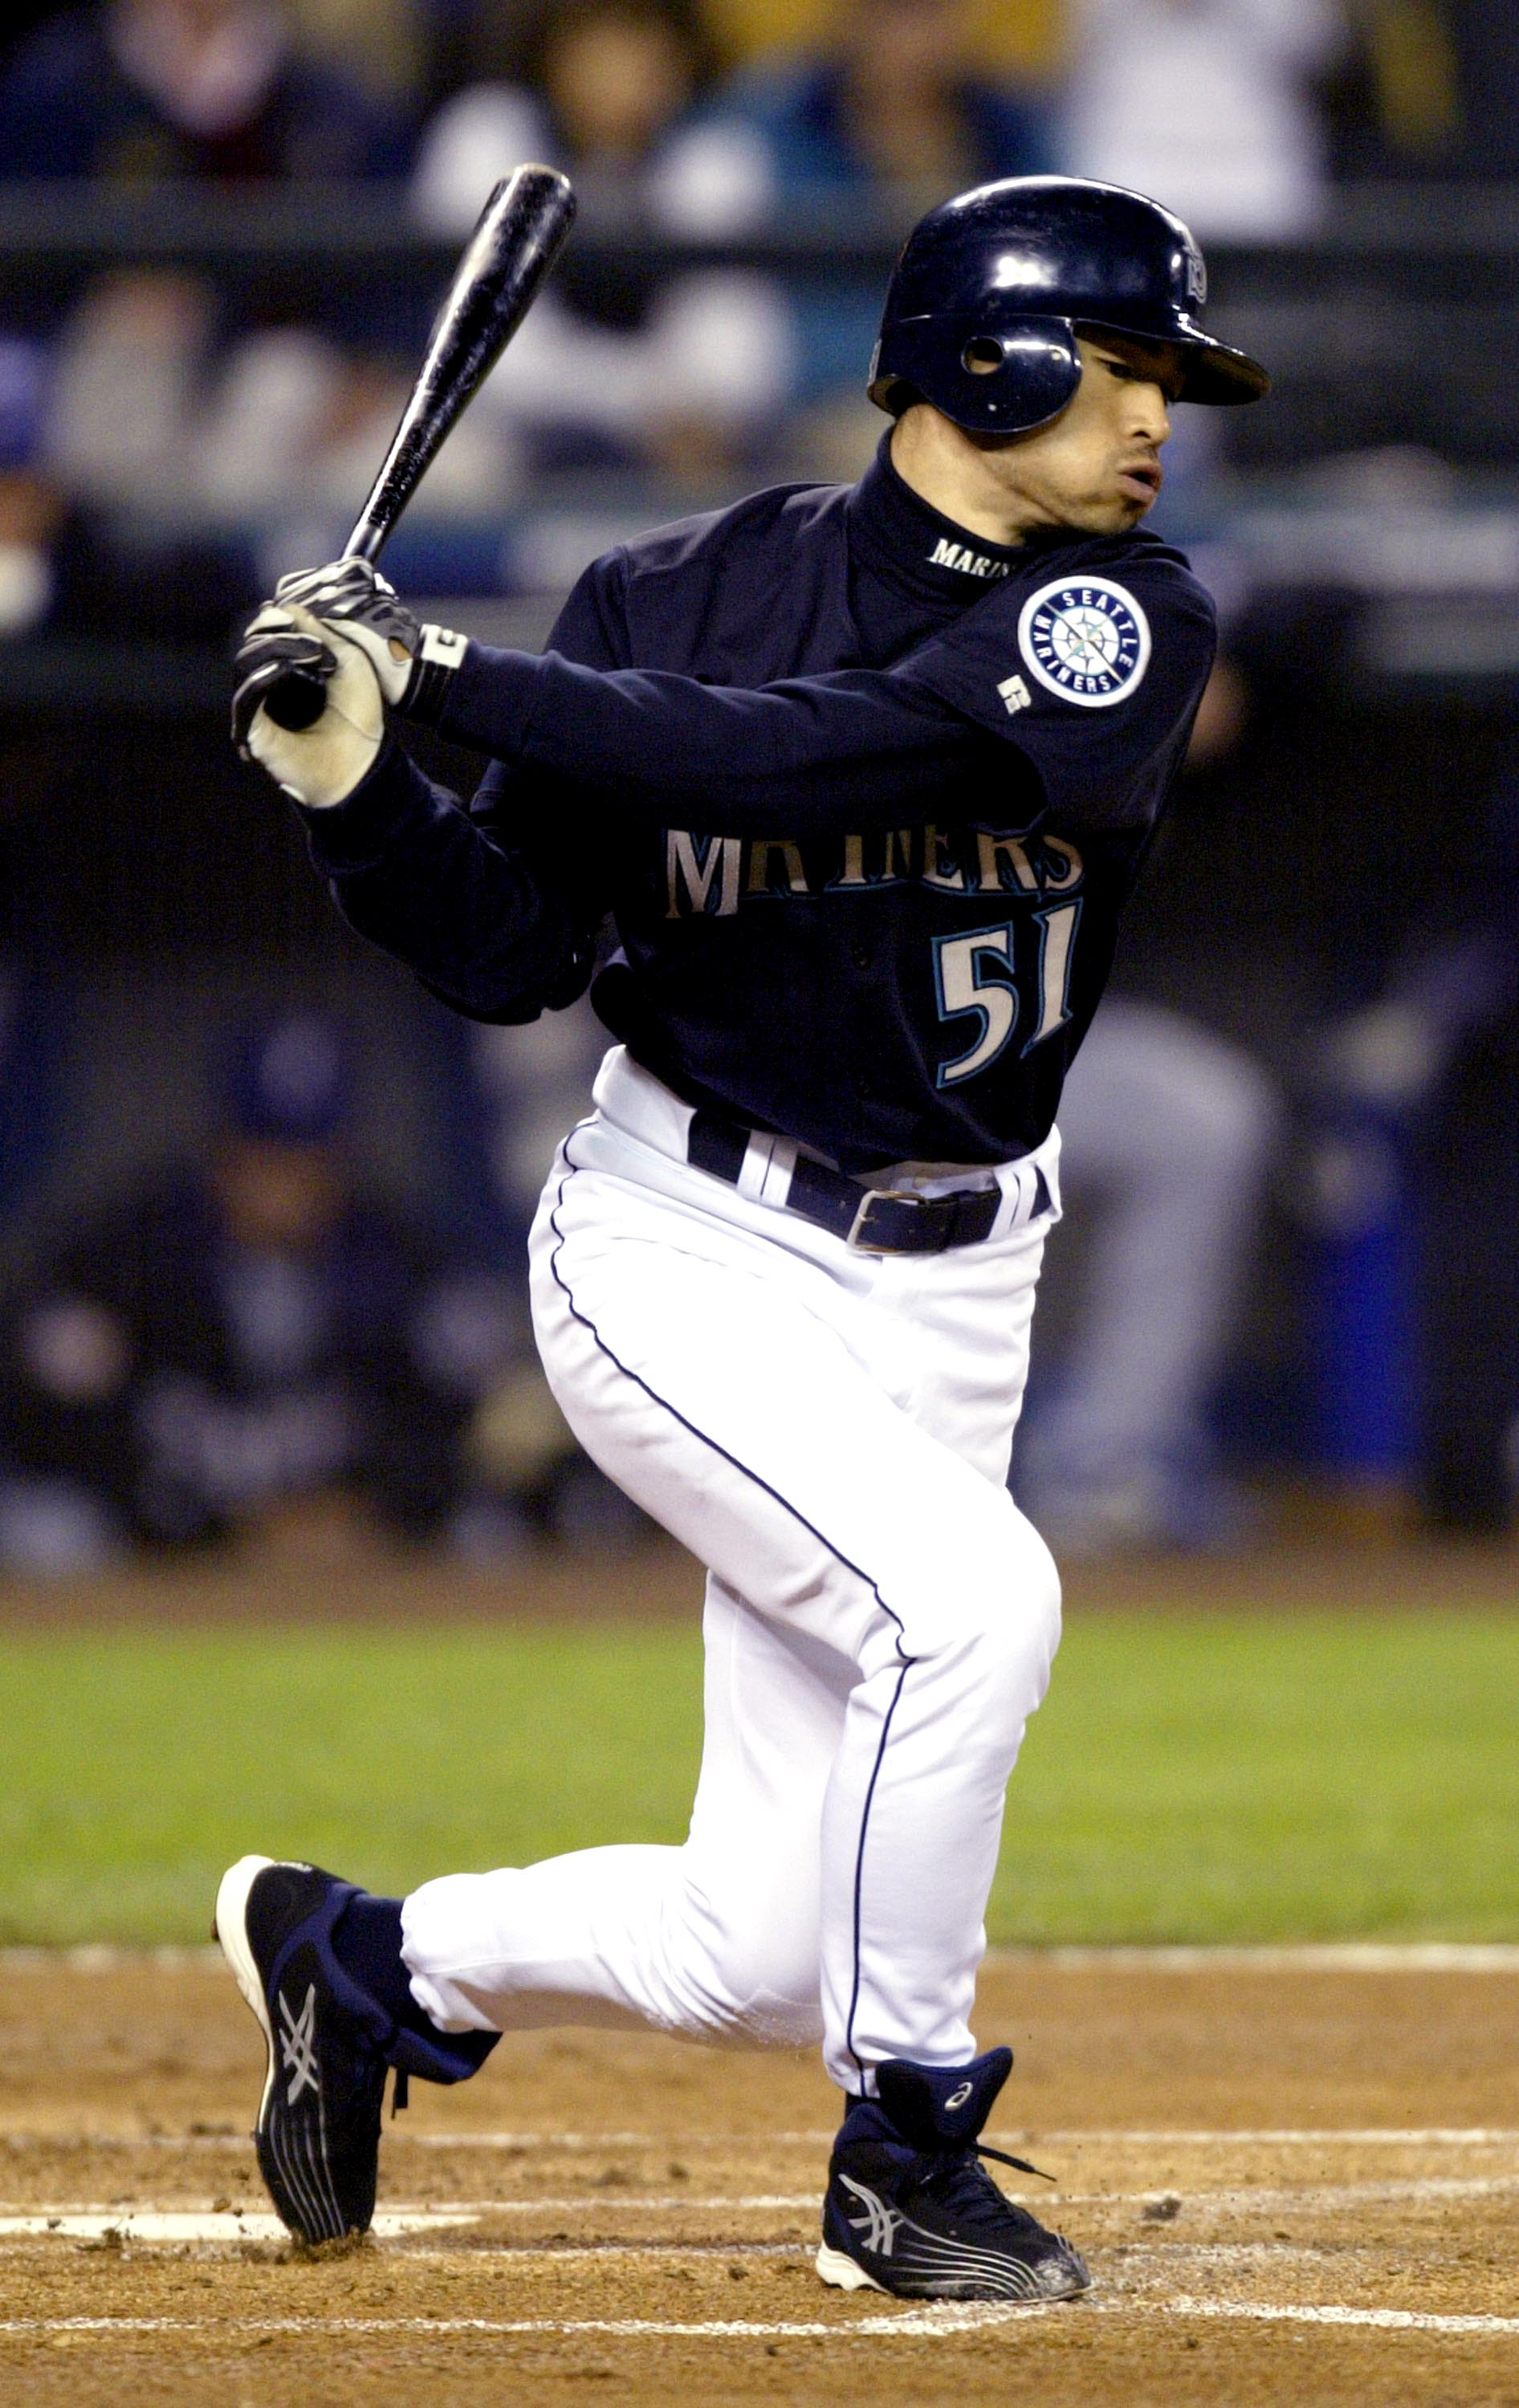 SEATTLE - OCTOBER 1:  Outfielder Ichiro Suzuki #51 of the Seattle Mariners connects with a Texas Rangers pitch and ties George Sisler's 84-year-old record for hits in a single season, during the game on October 1, 2004 at Safeco Field in Seattle, Washingt